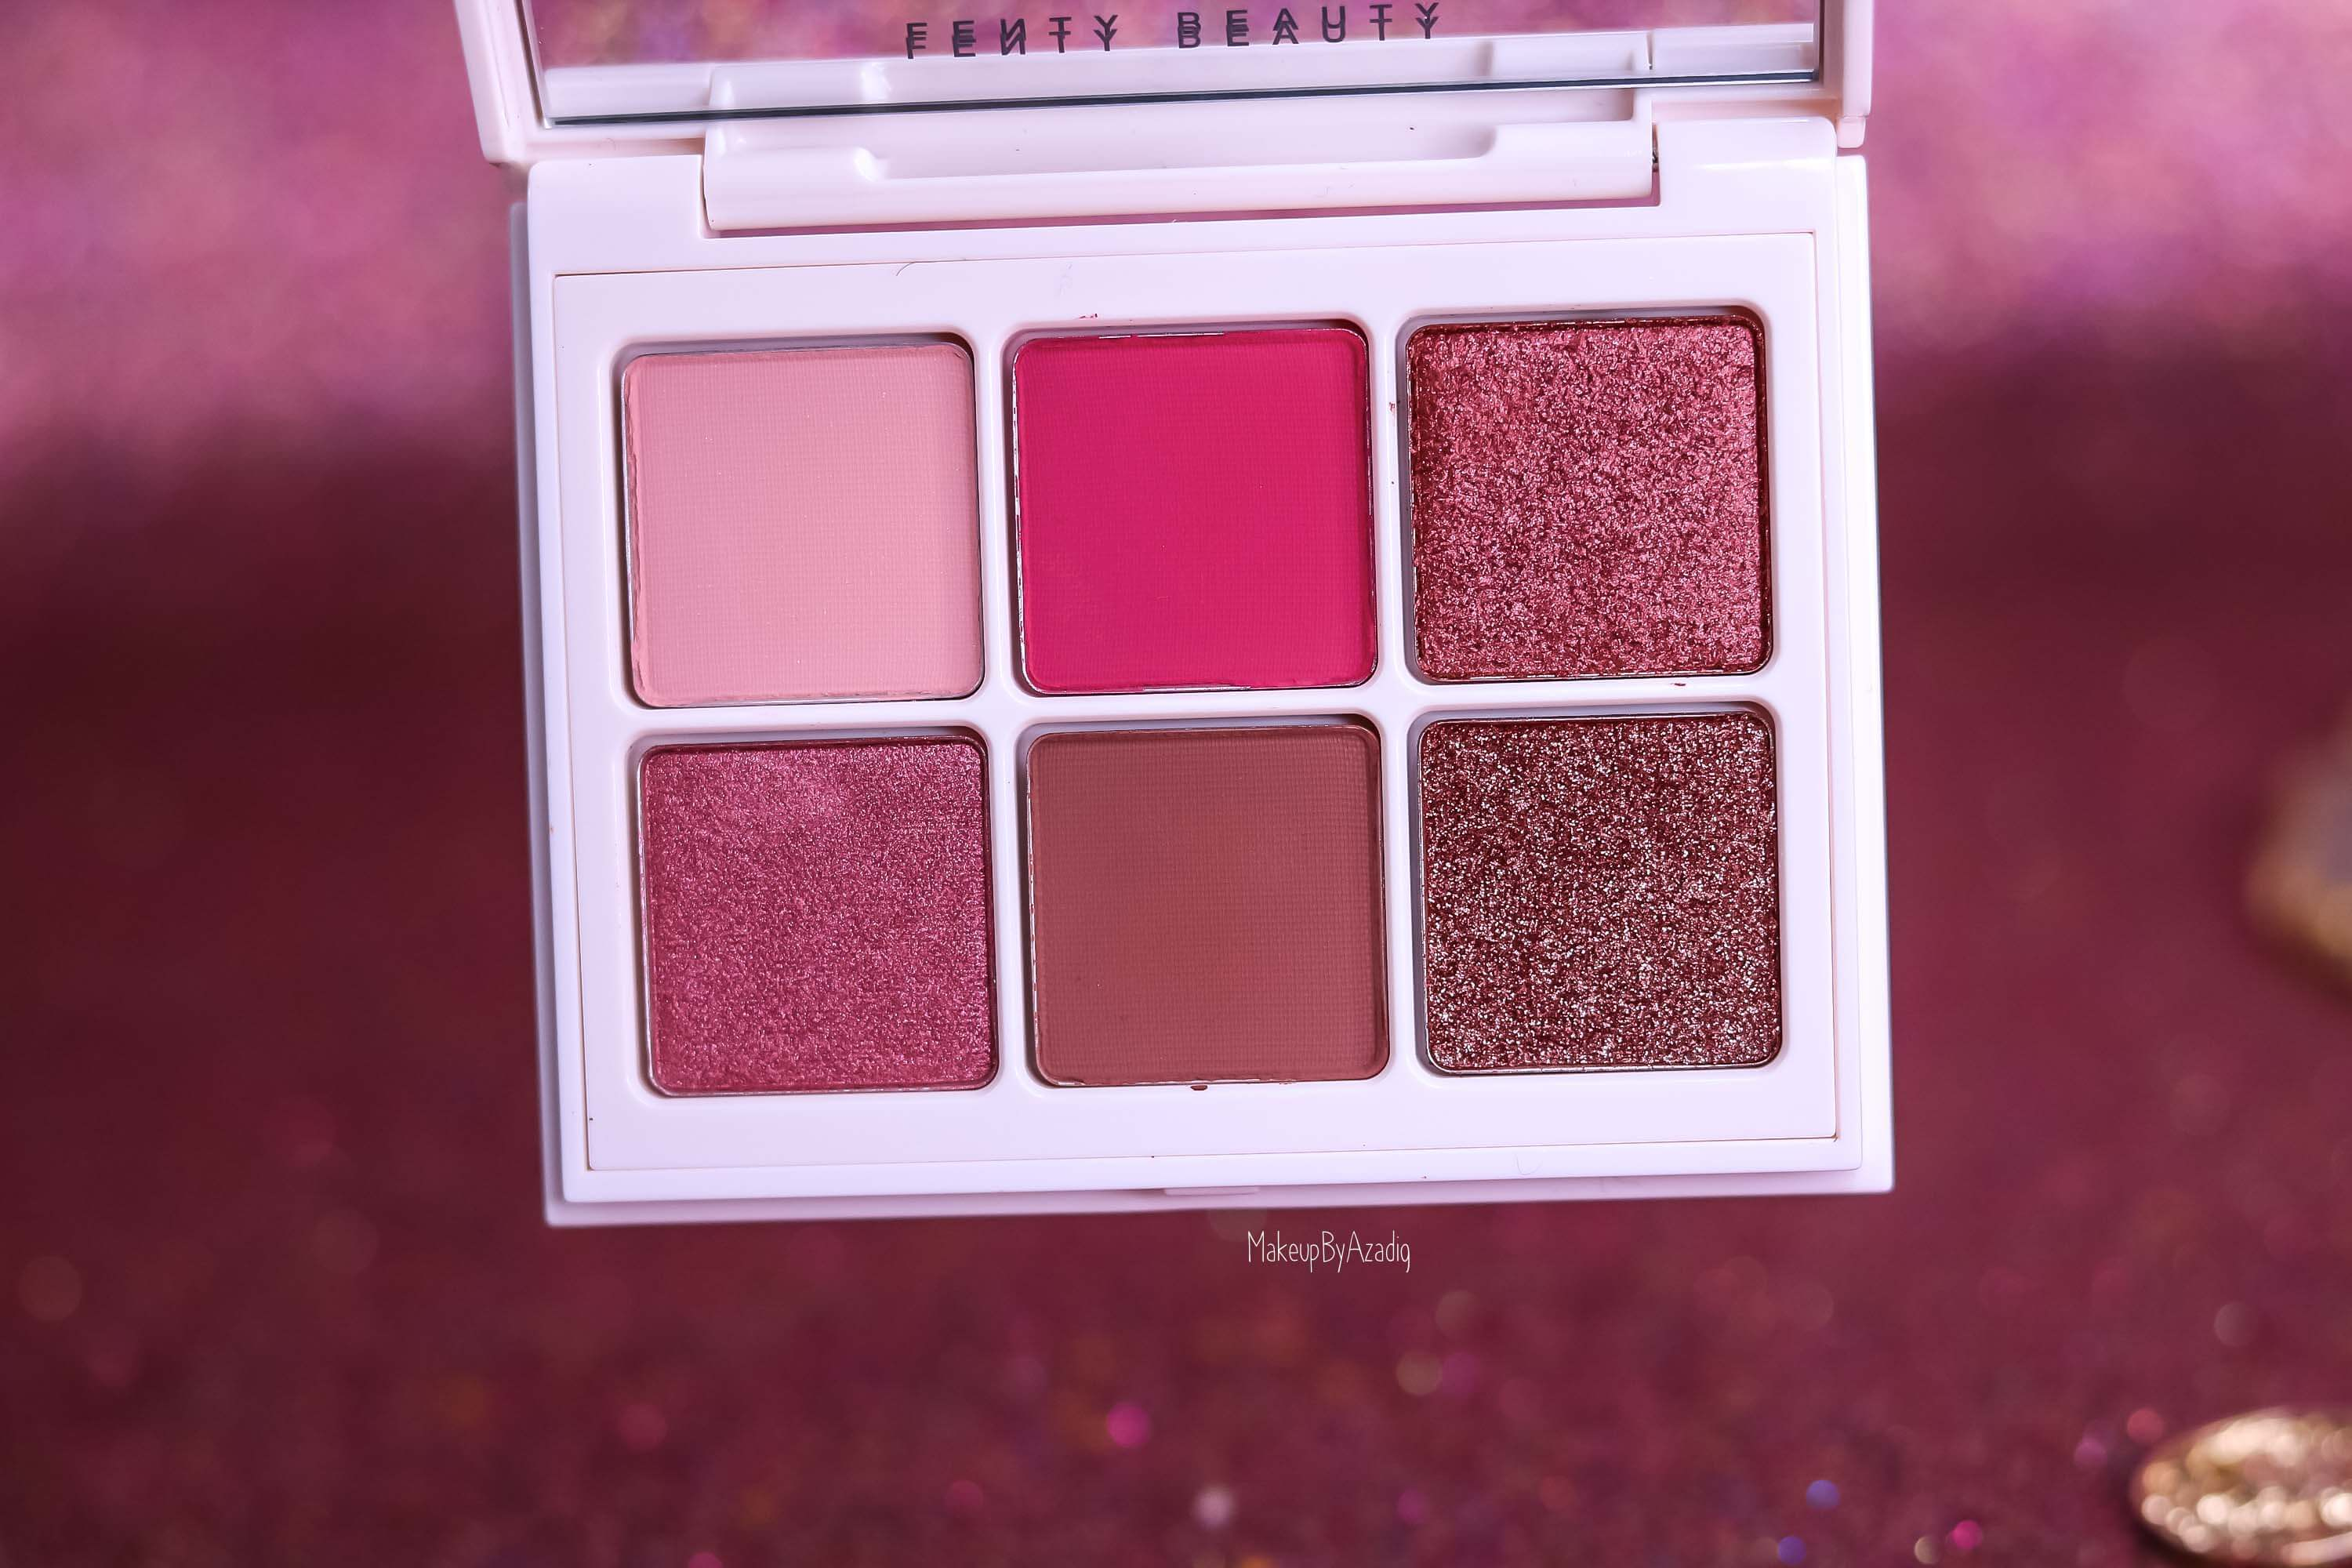 revue-palette-snap-shadows-4-fenty-beauty-rihanna-eyeshadow-rose-makeupbyazadig-avis-prix-swatch-sephora-fards